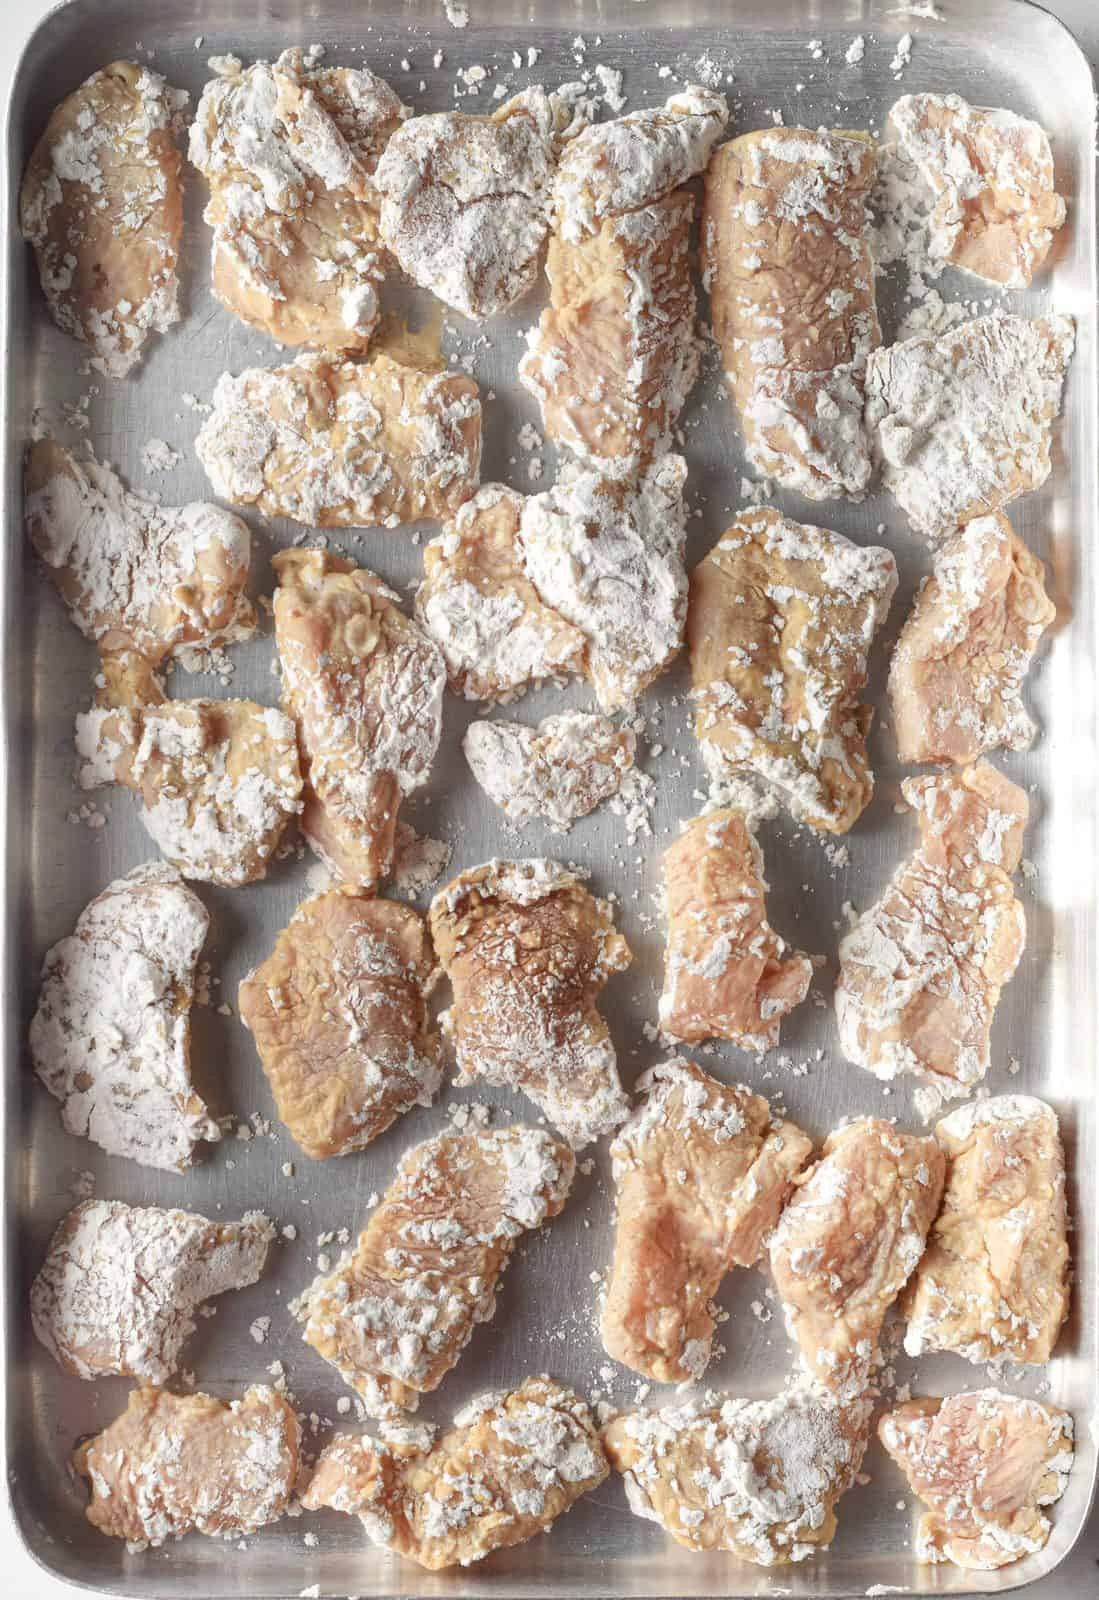 cornstarch coated chicken pieces laying in a single layer on a baking sheet.